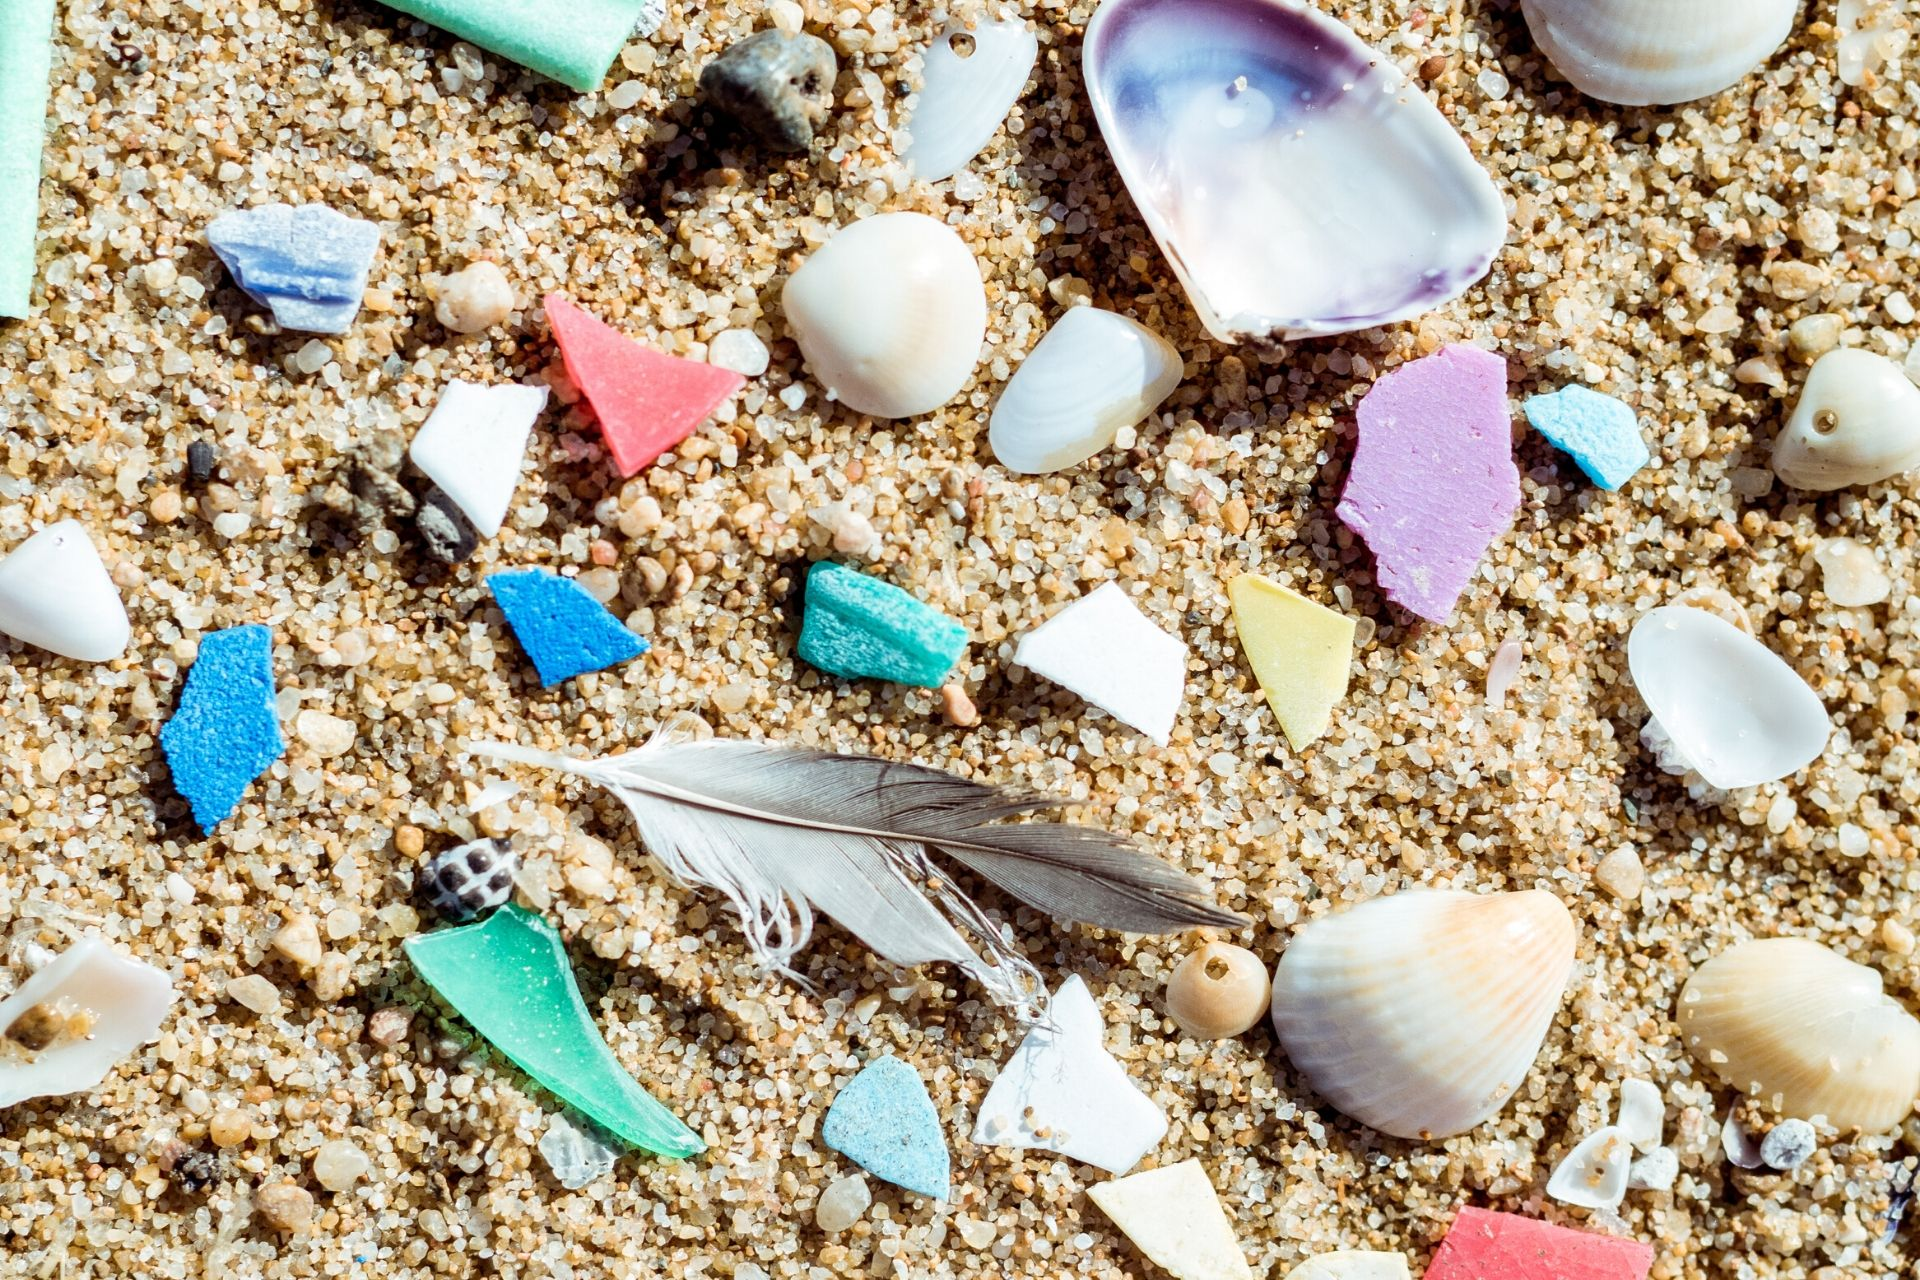 The problem with microplastics - peppermint magazine